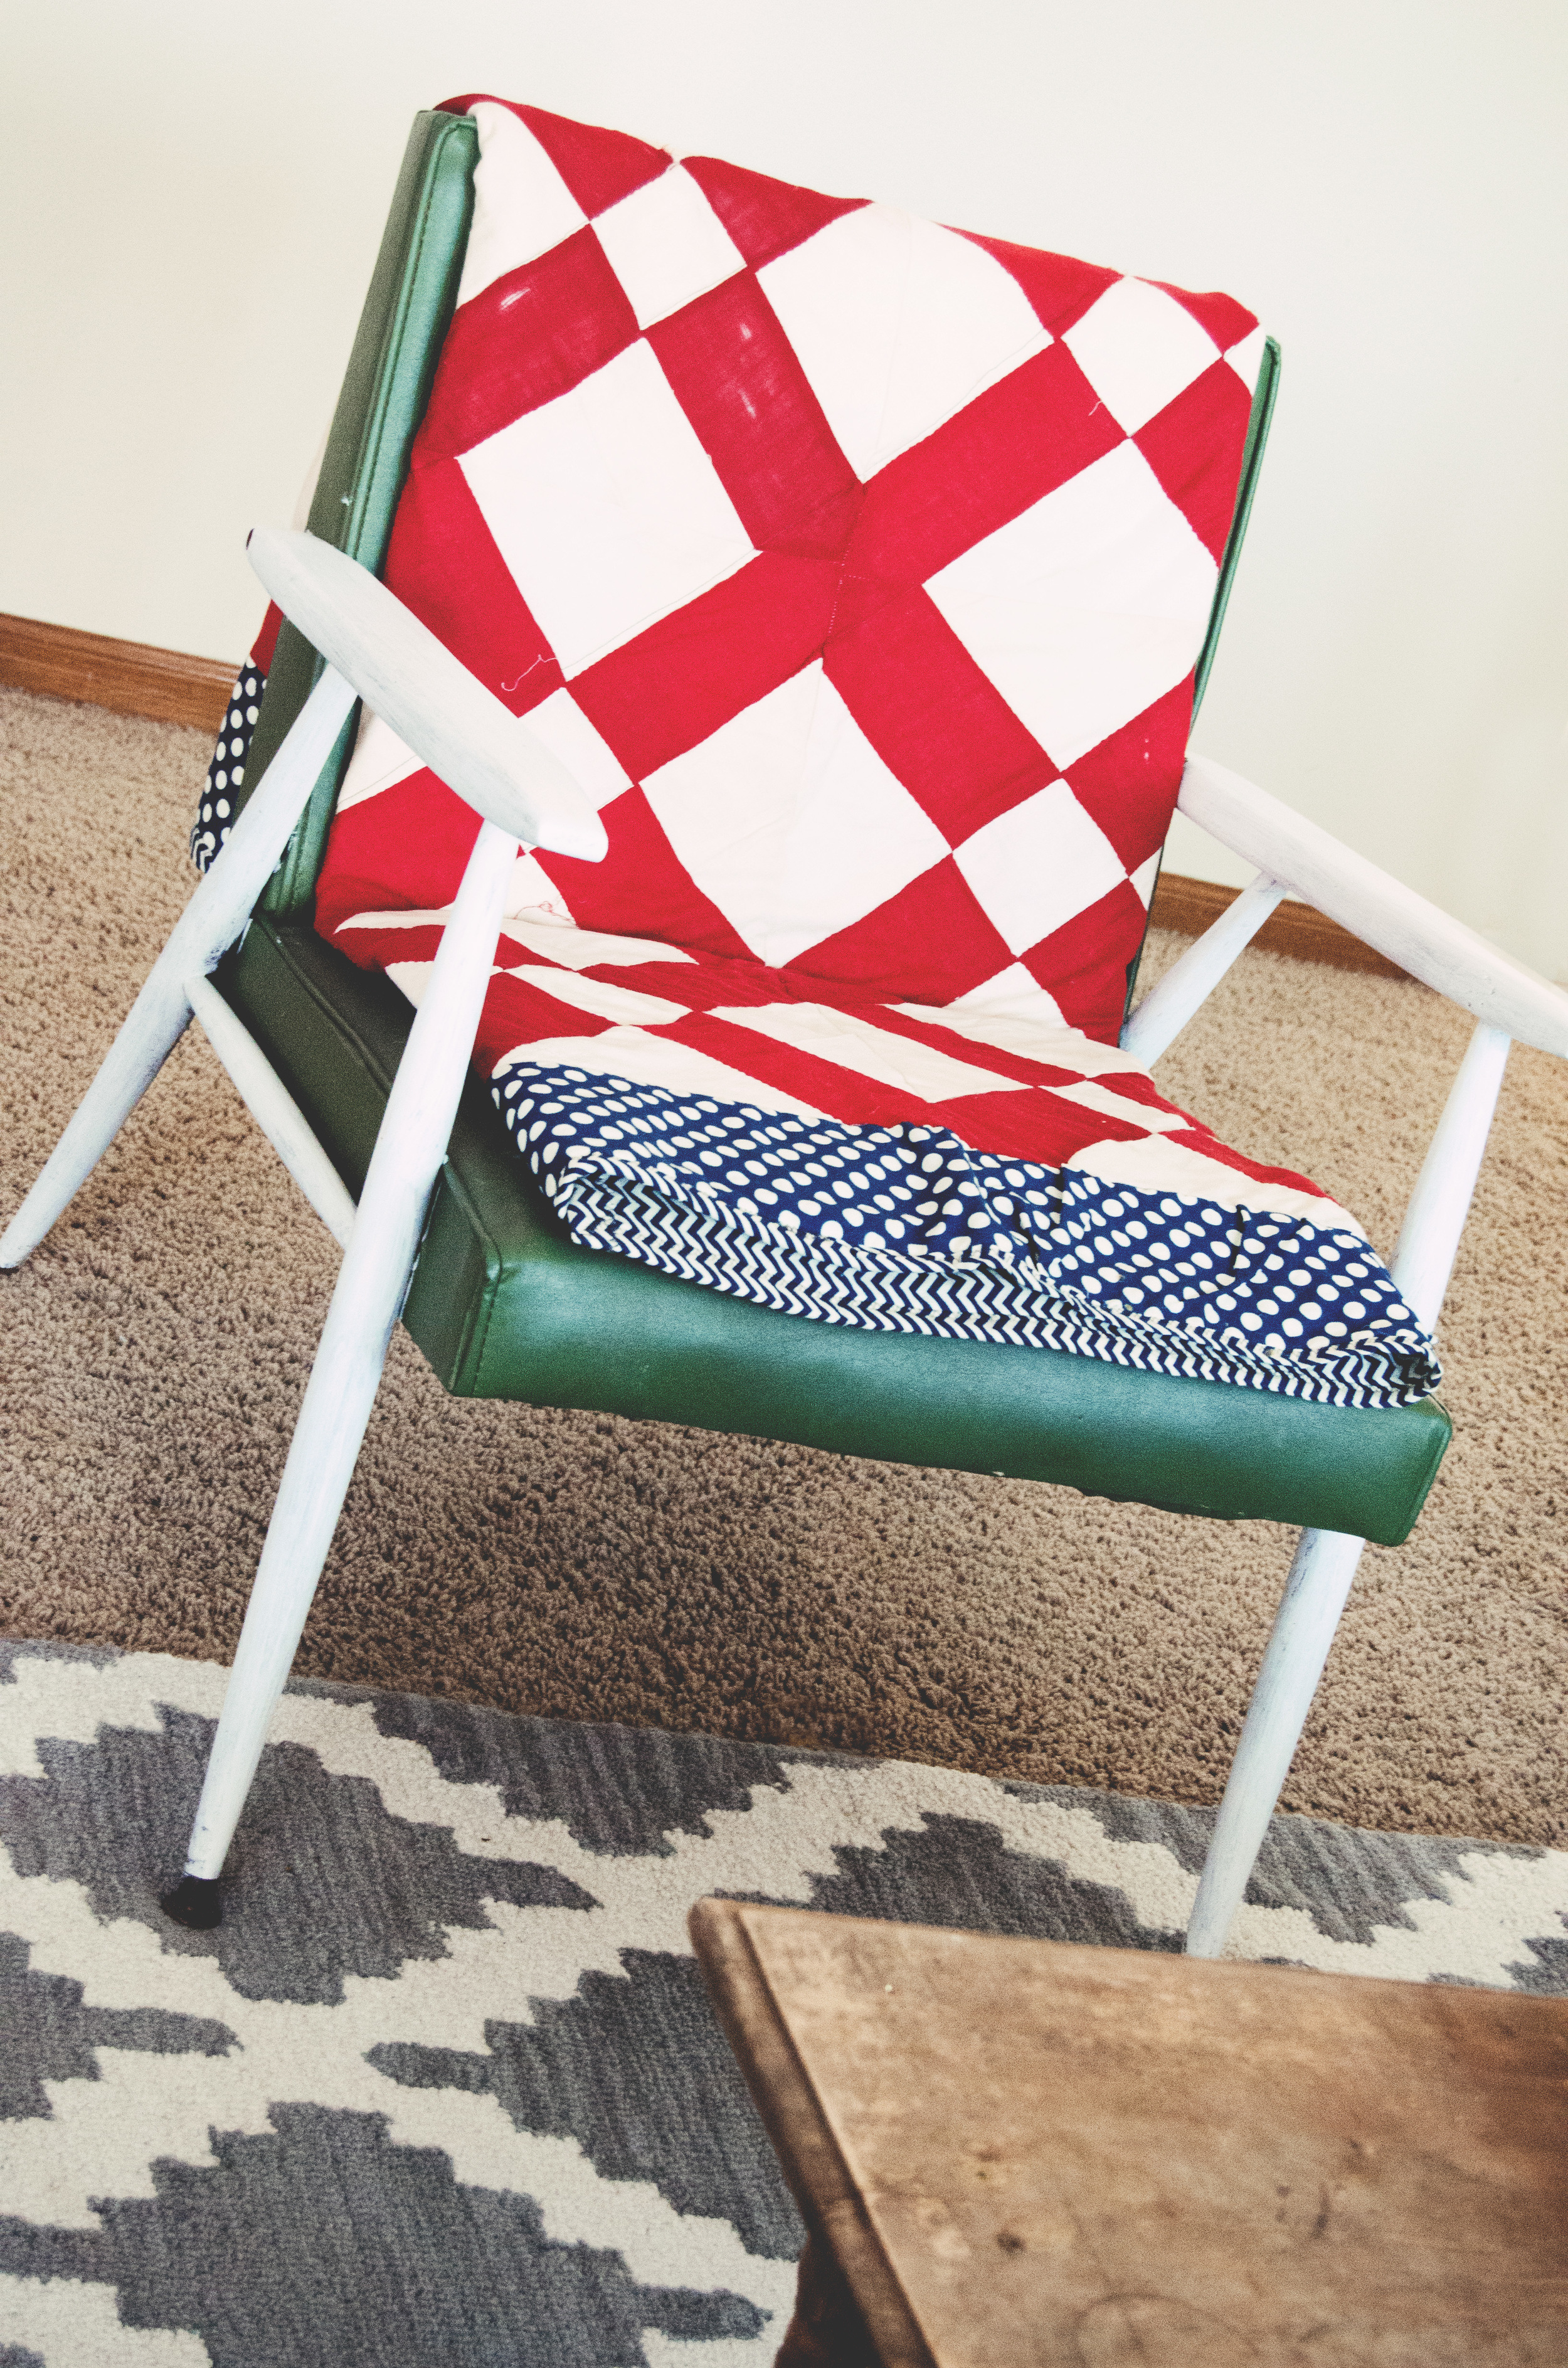 Vintage green chair with a red, white, and blue quilt. | hprallandco.com